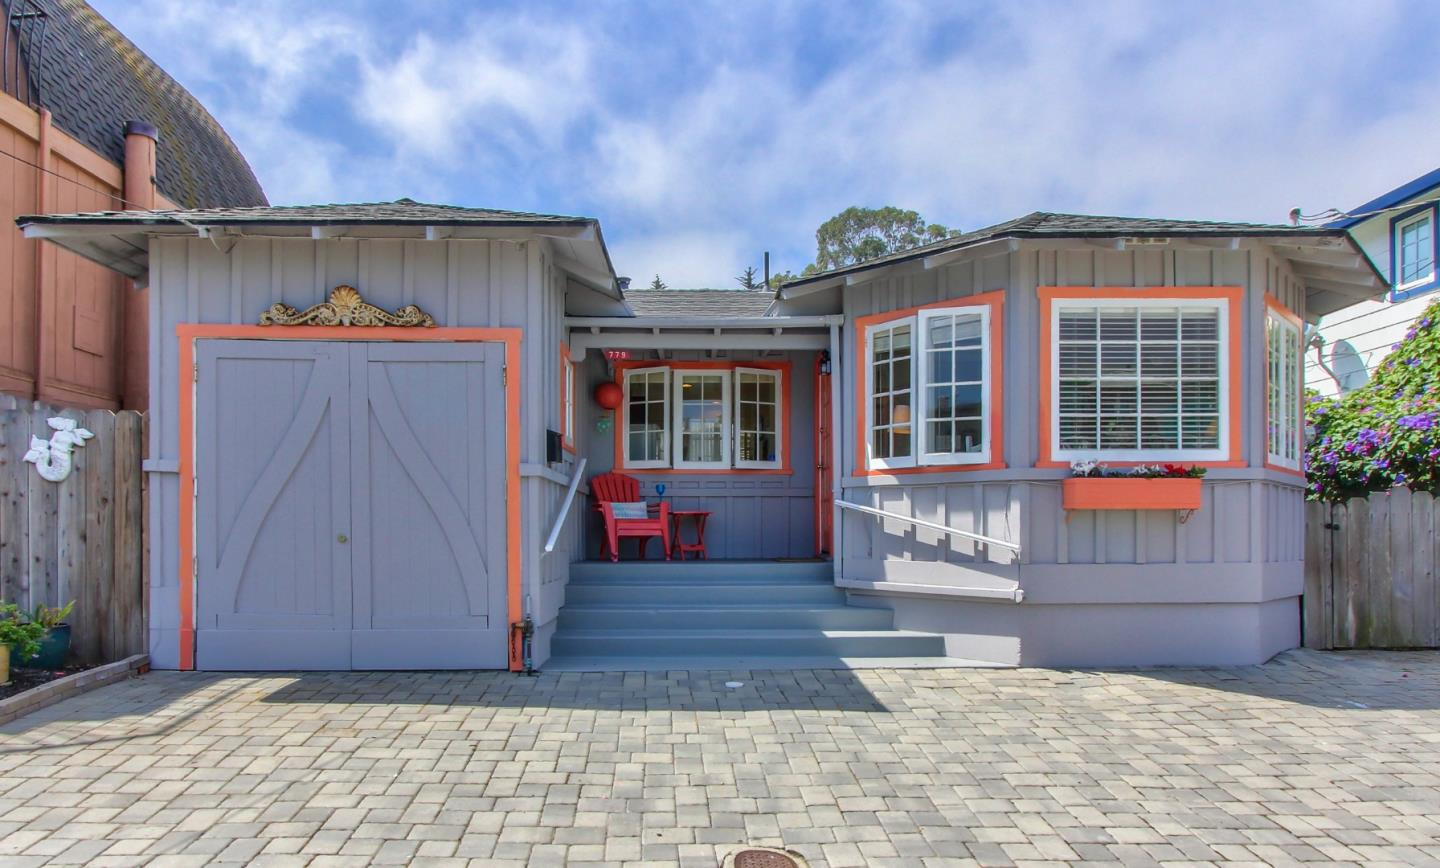 Property for sale at 779 Mermaid AVE, Pacific Grove,  CA 93950